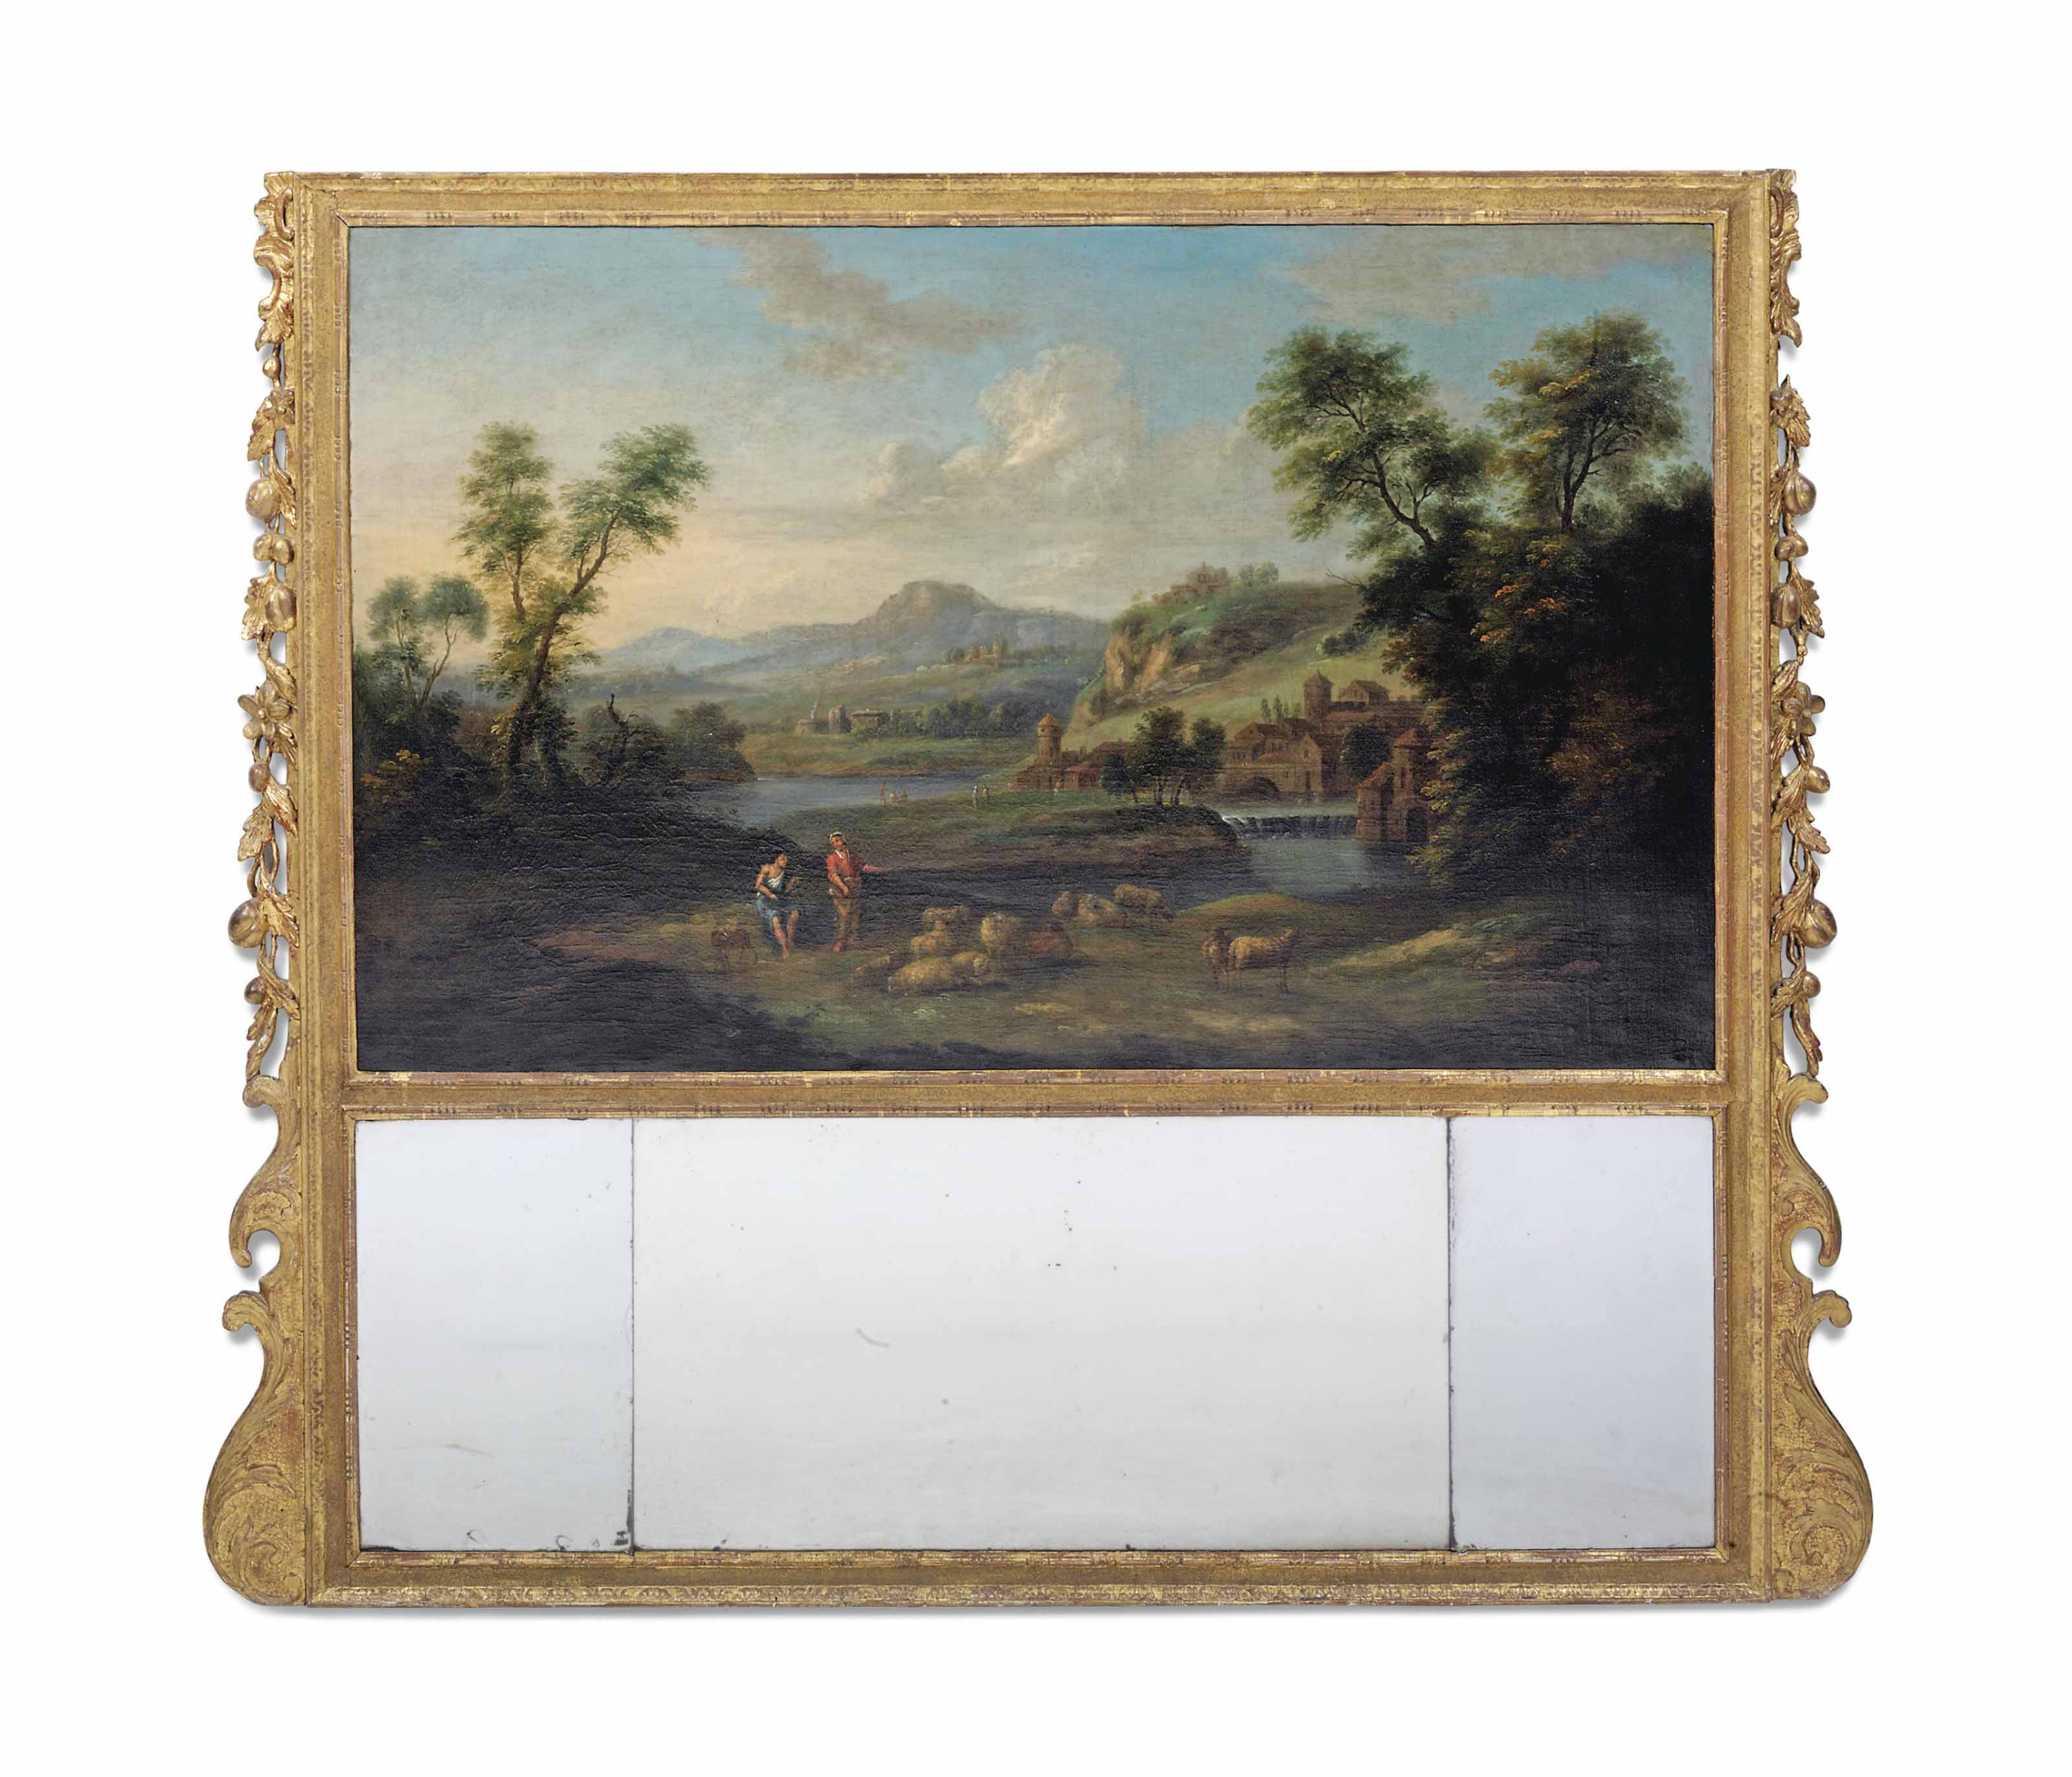 A GEORGE II GILTWOOD TRUMEAU MIRROR INCORPORATING AN OIL ON CANVAS OF AN ARCADIAN LANDSCAPE